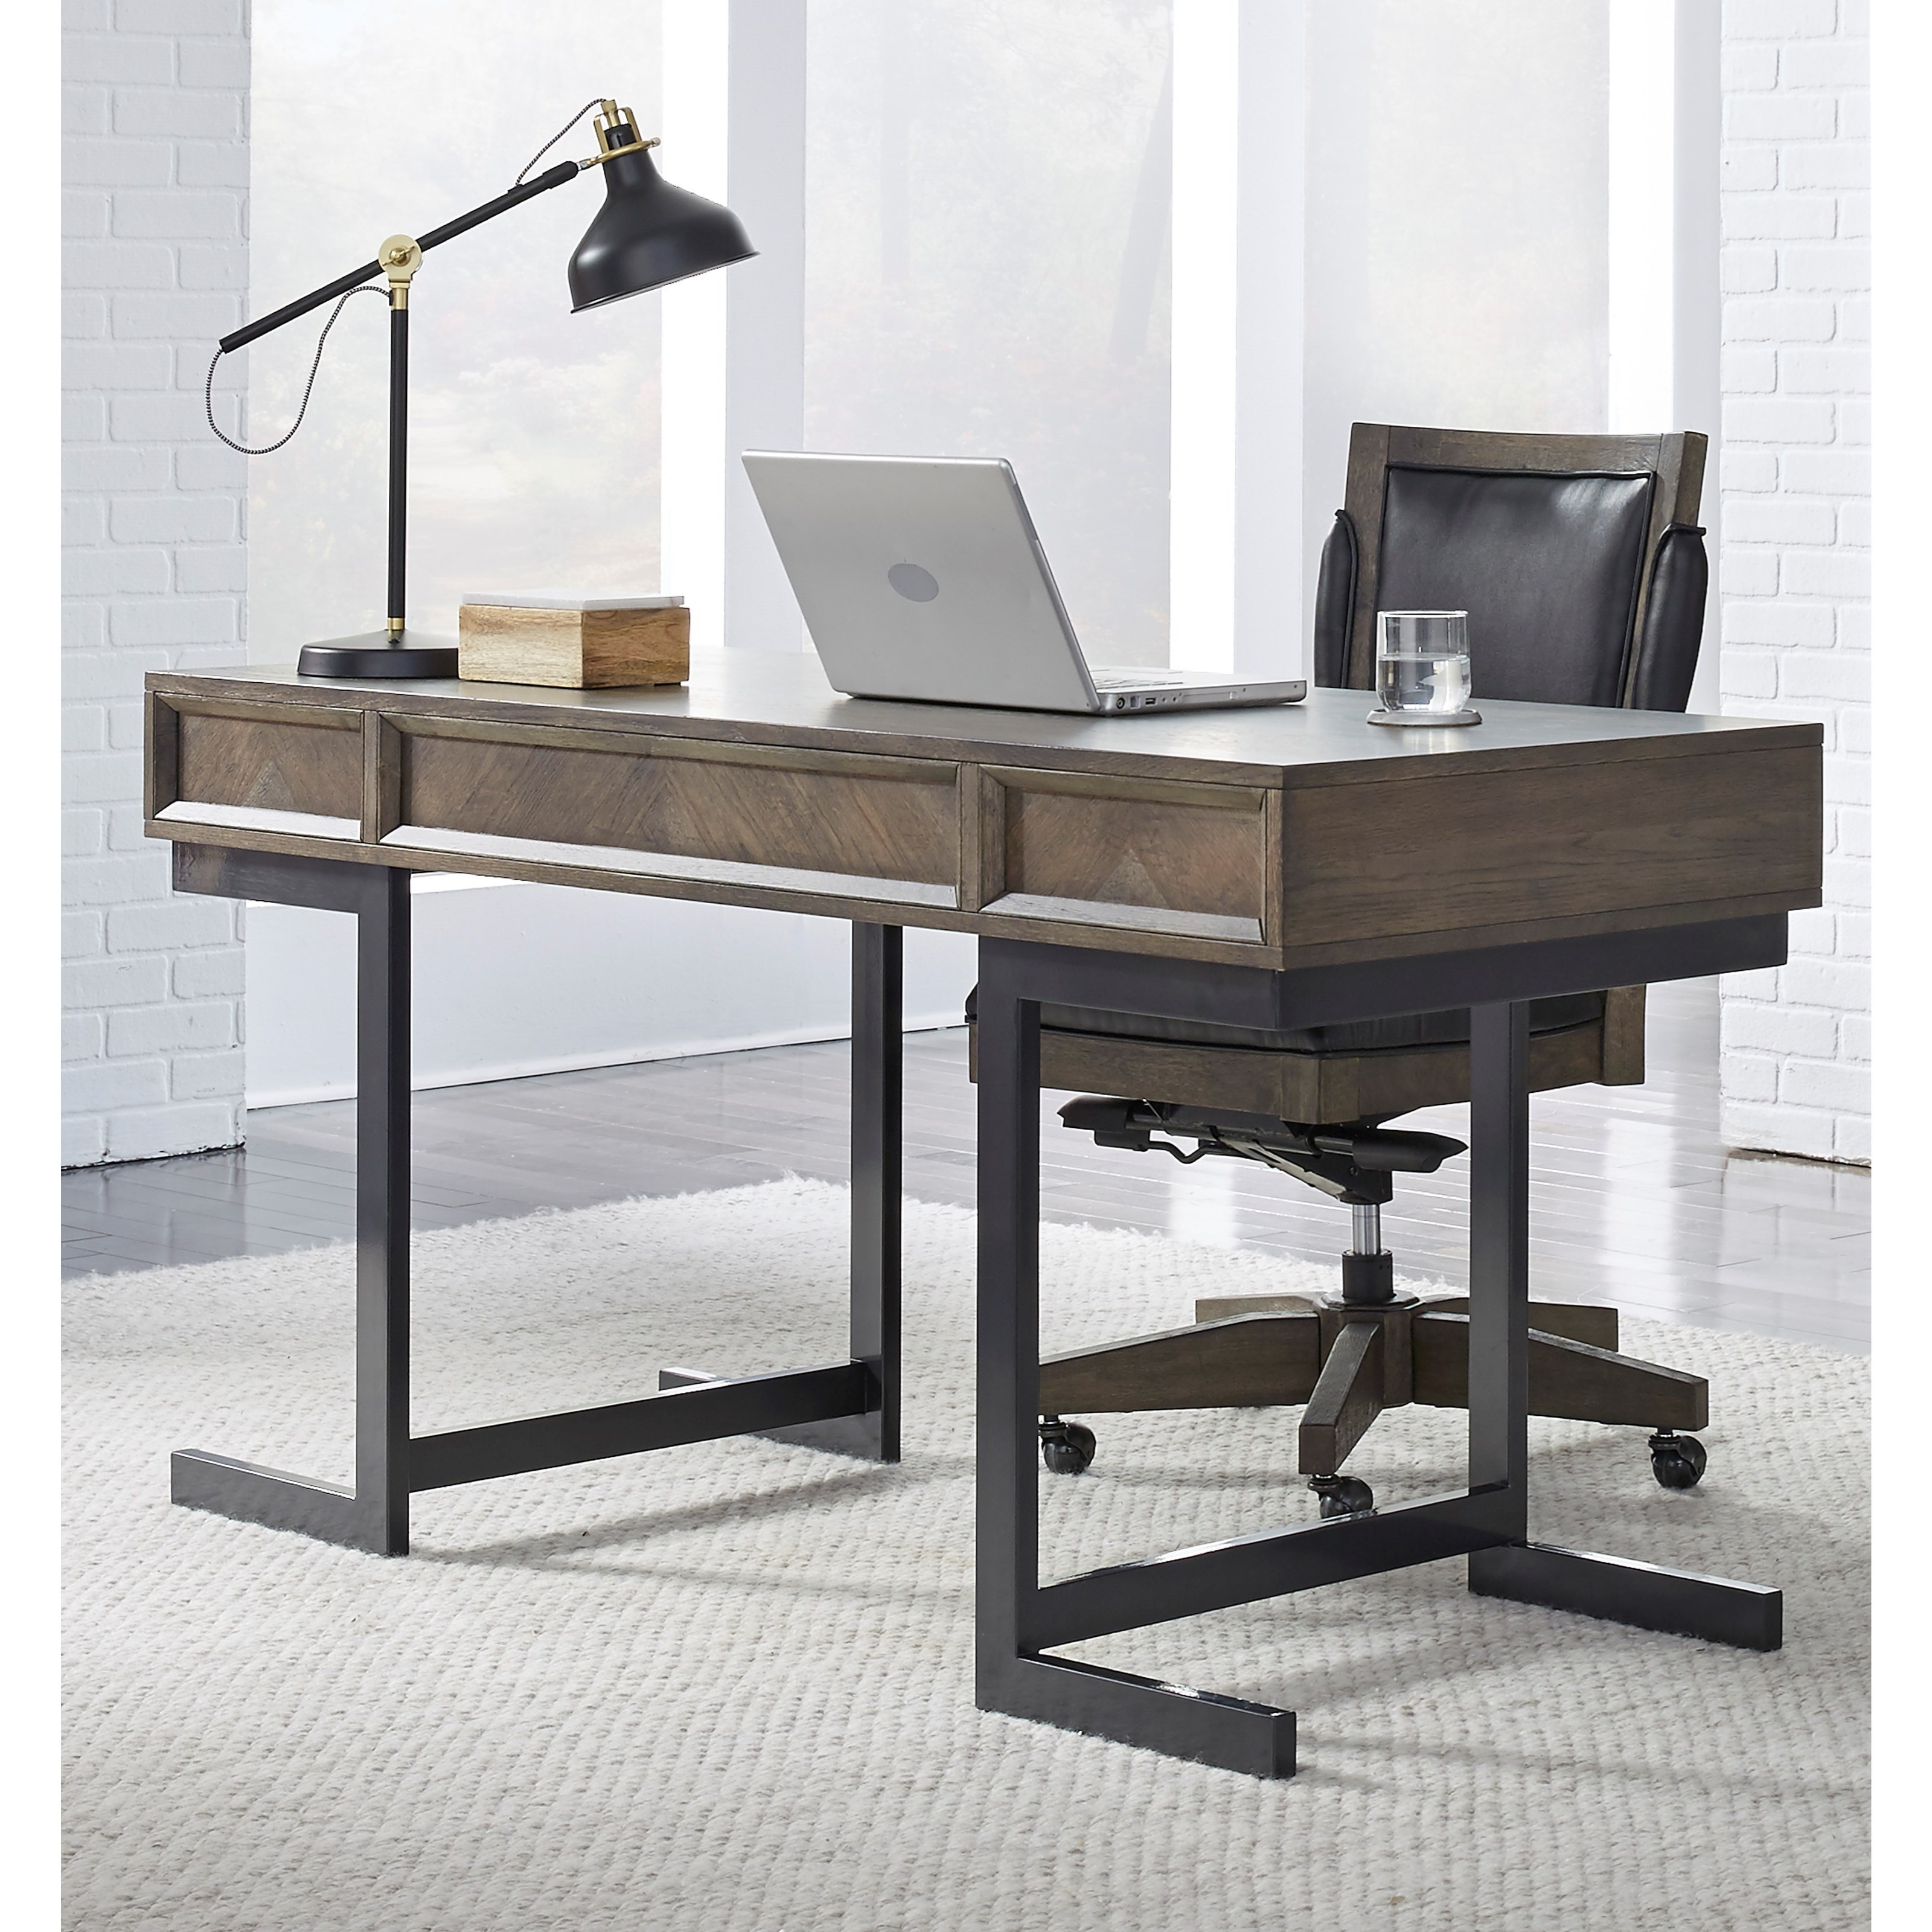 Harper Point Contemporary Desk by Aspenhome at Baer's Furniture